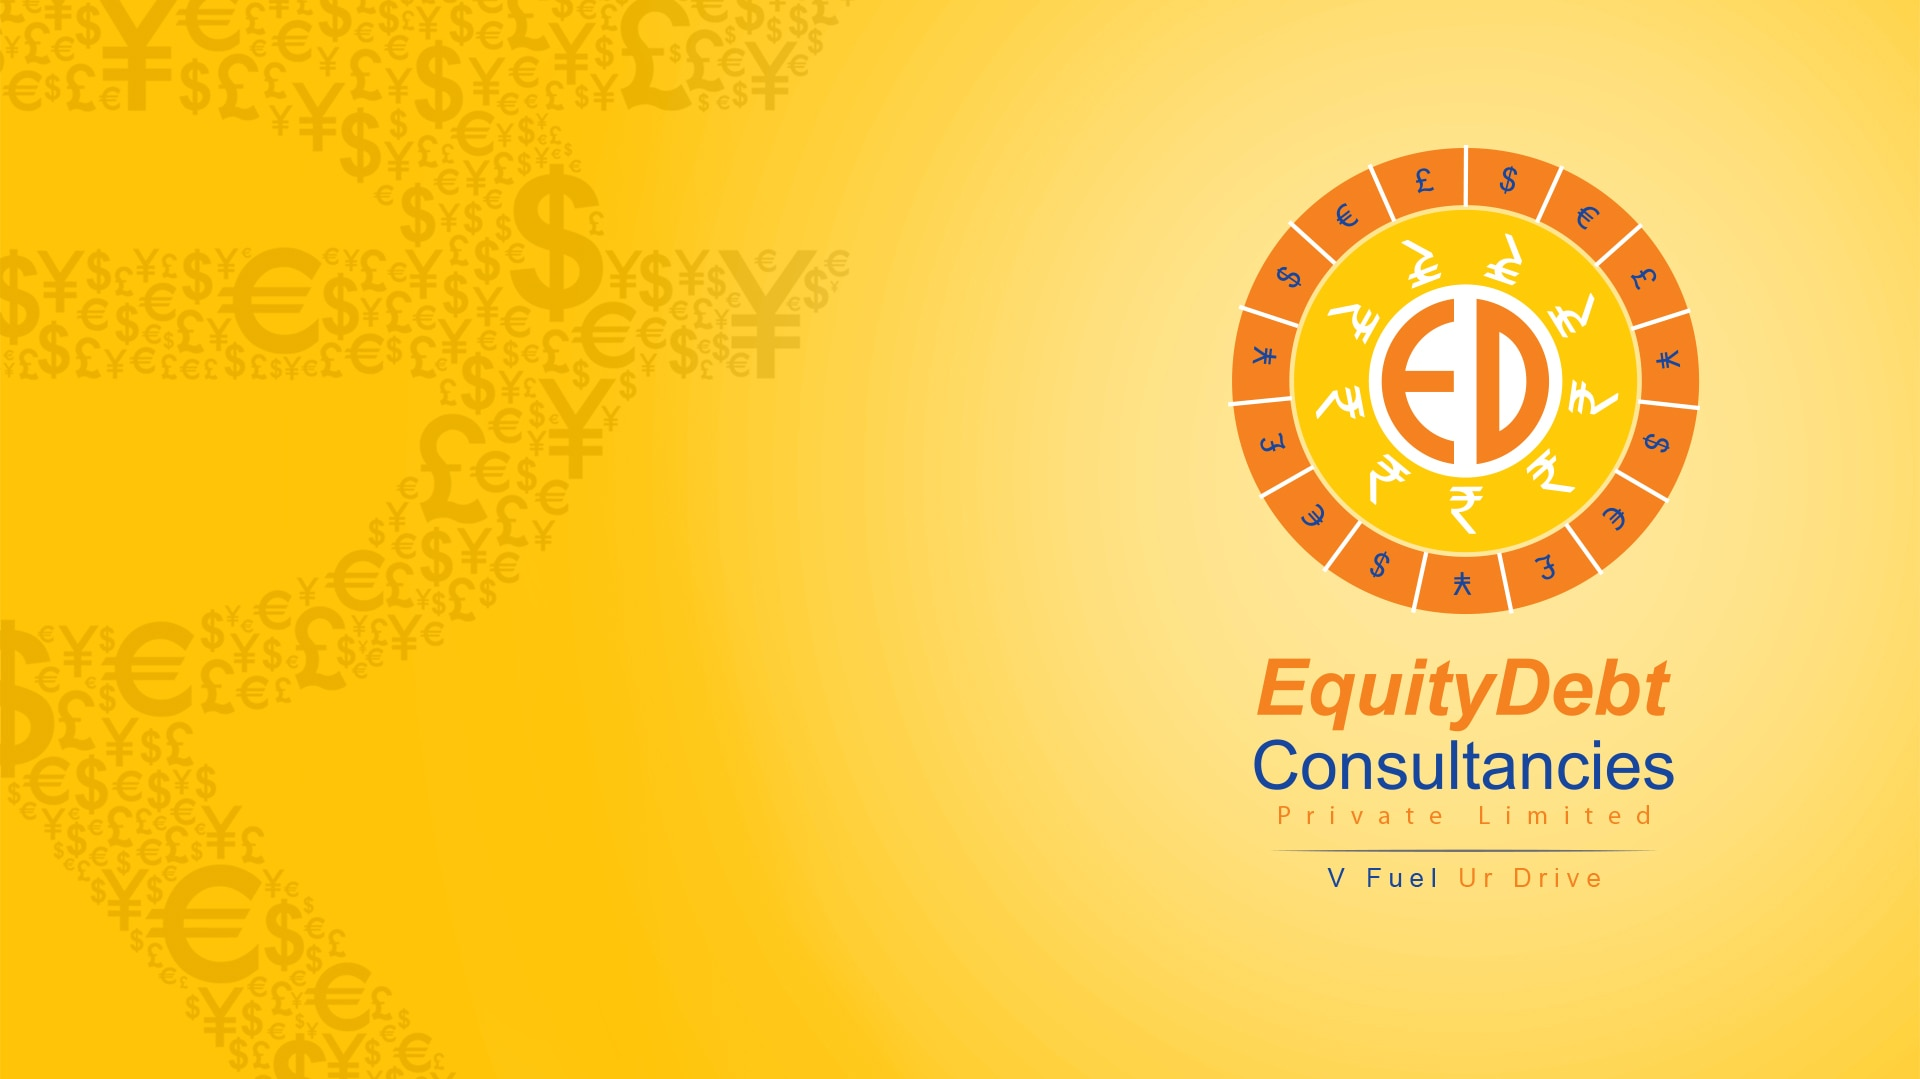 EquityDebt Consultancies Private Limited - Private Equity Consultants in Central Delhi